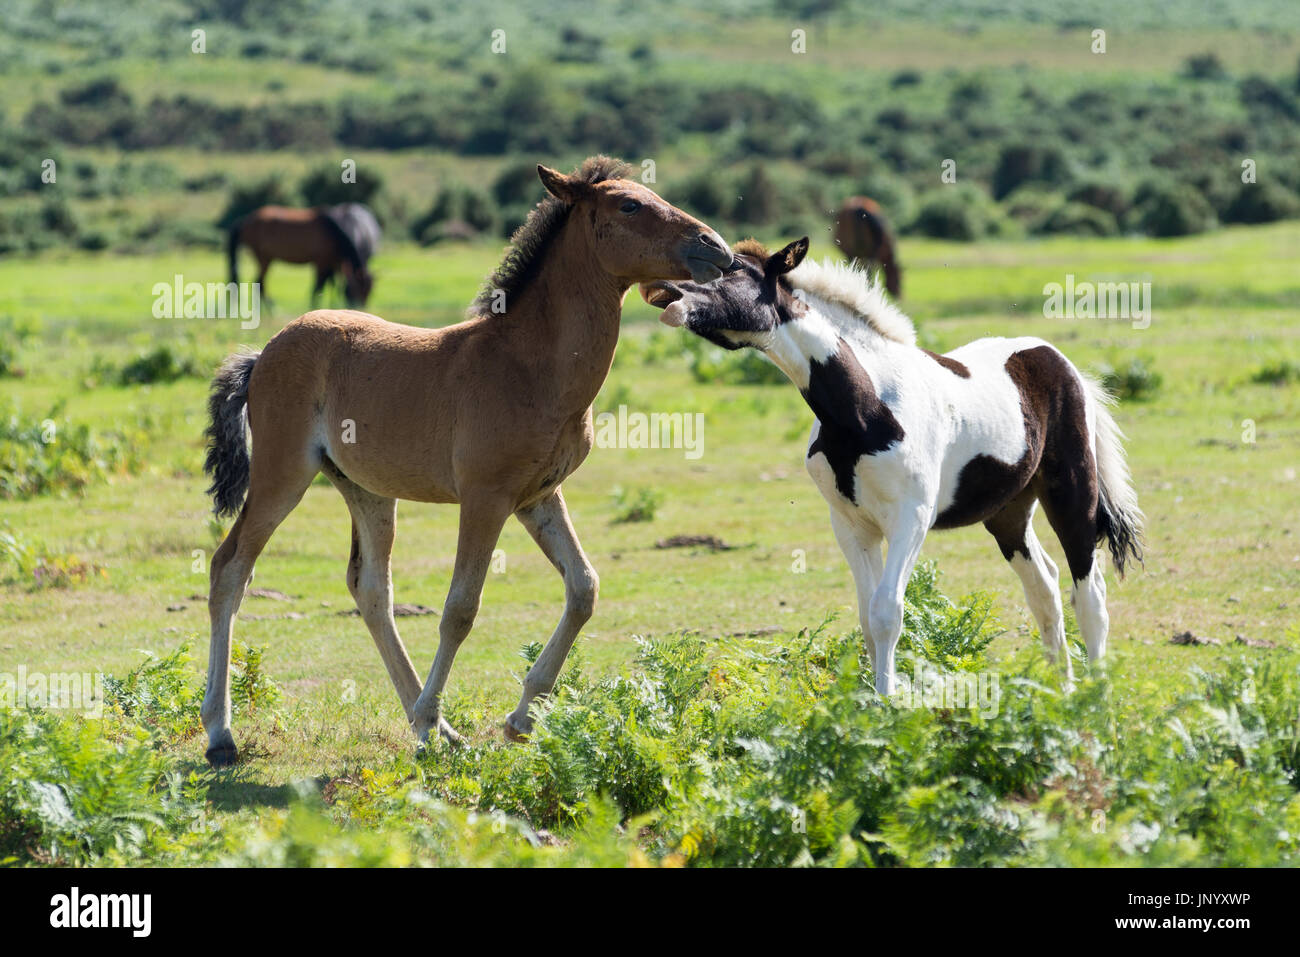 Godshill, Fordingbridge, Hampshire, UK. 31st July,  2017. UK Weather. A warm and sunny day and some welcome dry weather on the New Forest National Park. A playful pair of foals frolic in the sunshine. Credit: Paul Biggins/Alamy Live News - Stock Image